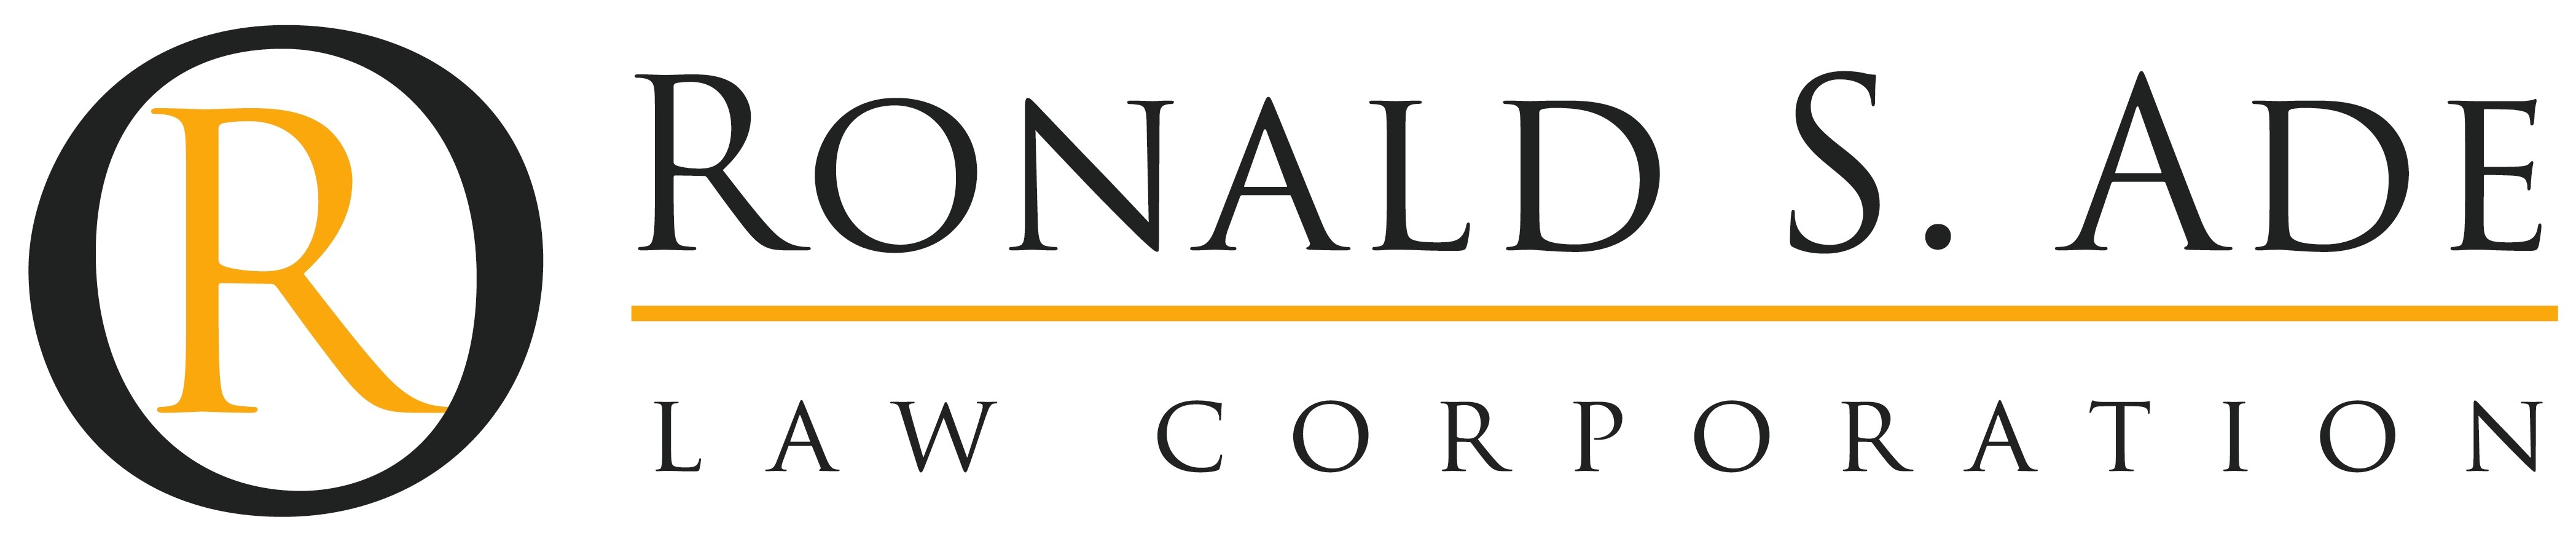 Ronald S. Ade Law Corporation